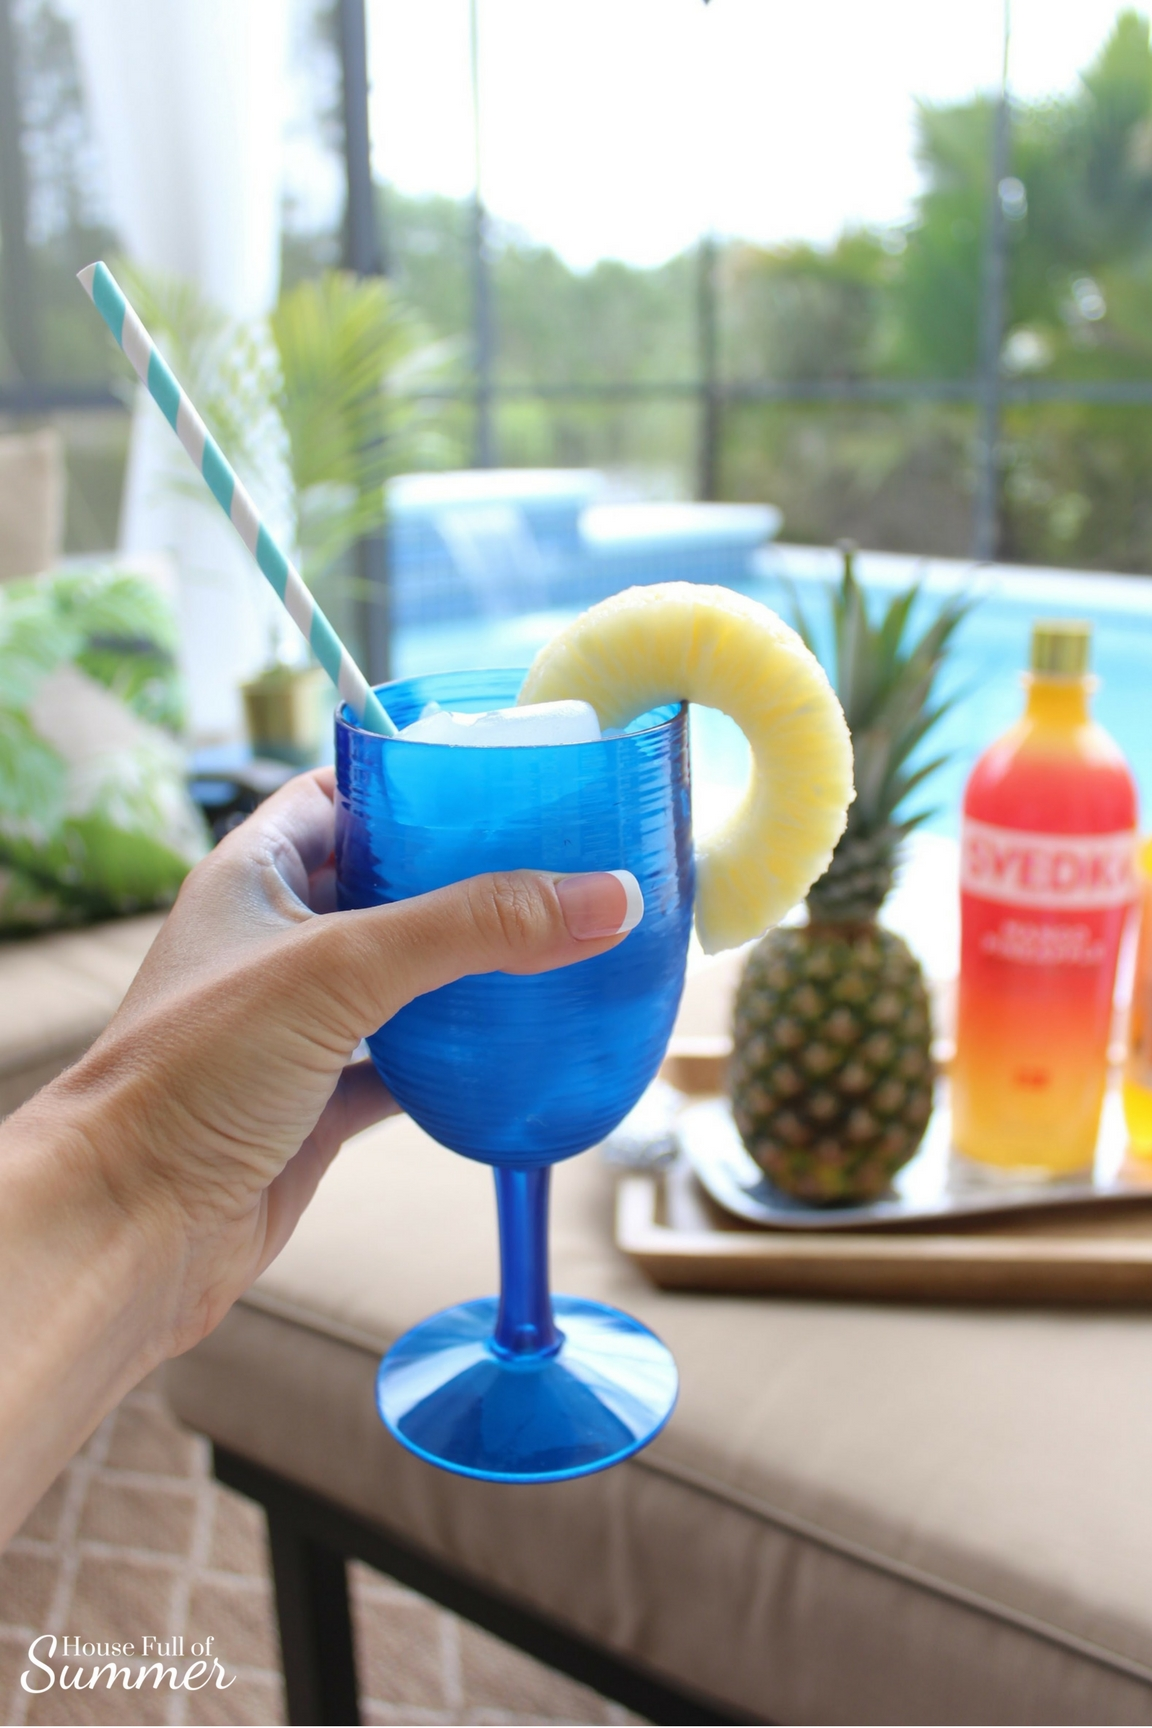 Simple Mango Pineapple Cocktail Recipe | House Full of Summer - tropical cocktail ideas, flavored vodka, flavored water, outdoor entertaining ideas, summer drink, SVEDKA Pineapple Mango, Mango Tropical mixer